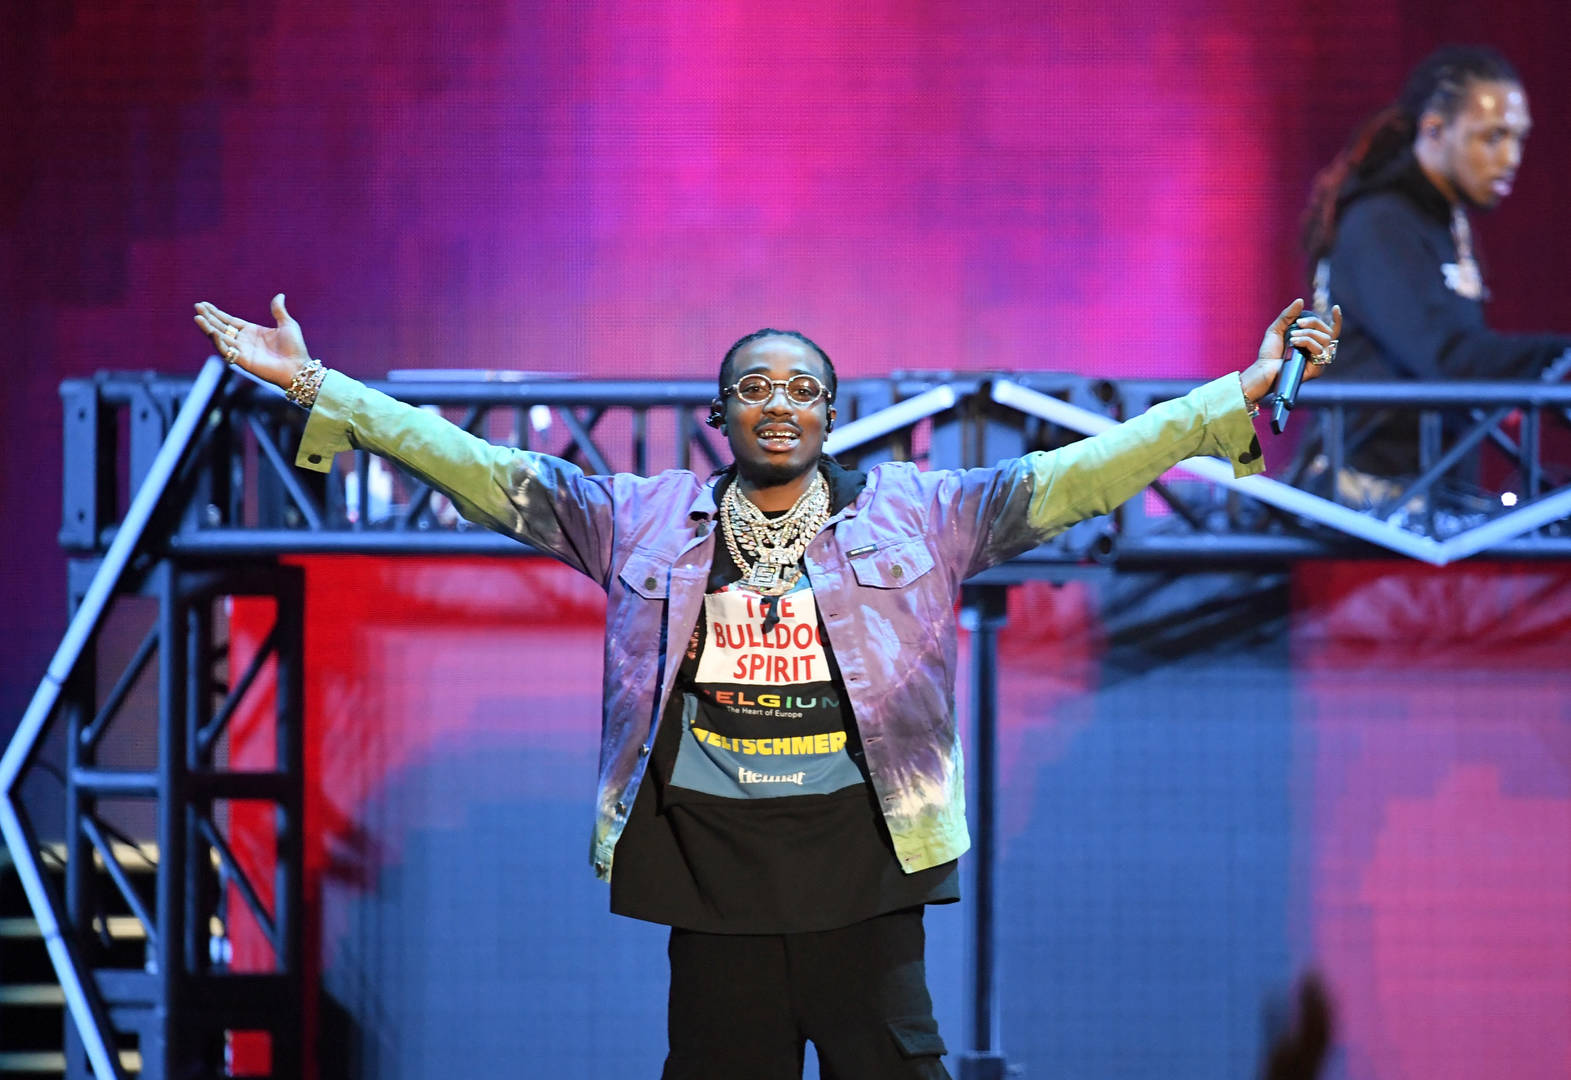 Swedish prosecutor to decide on charging rapper ASAP Rocky